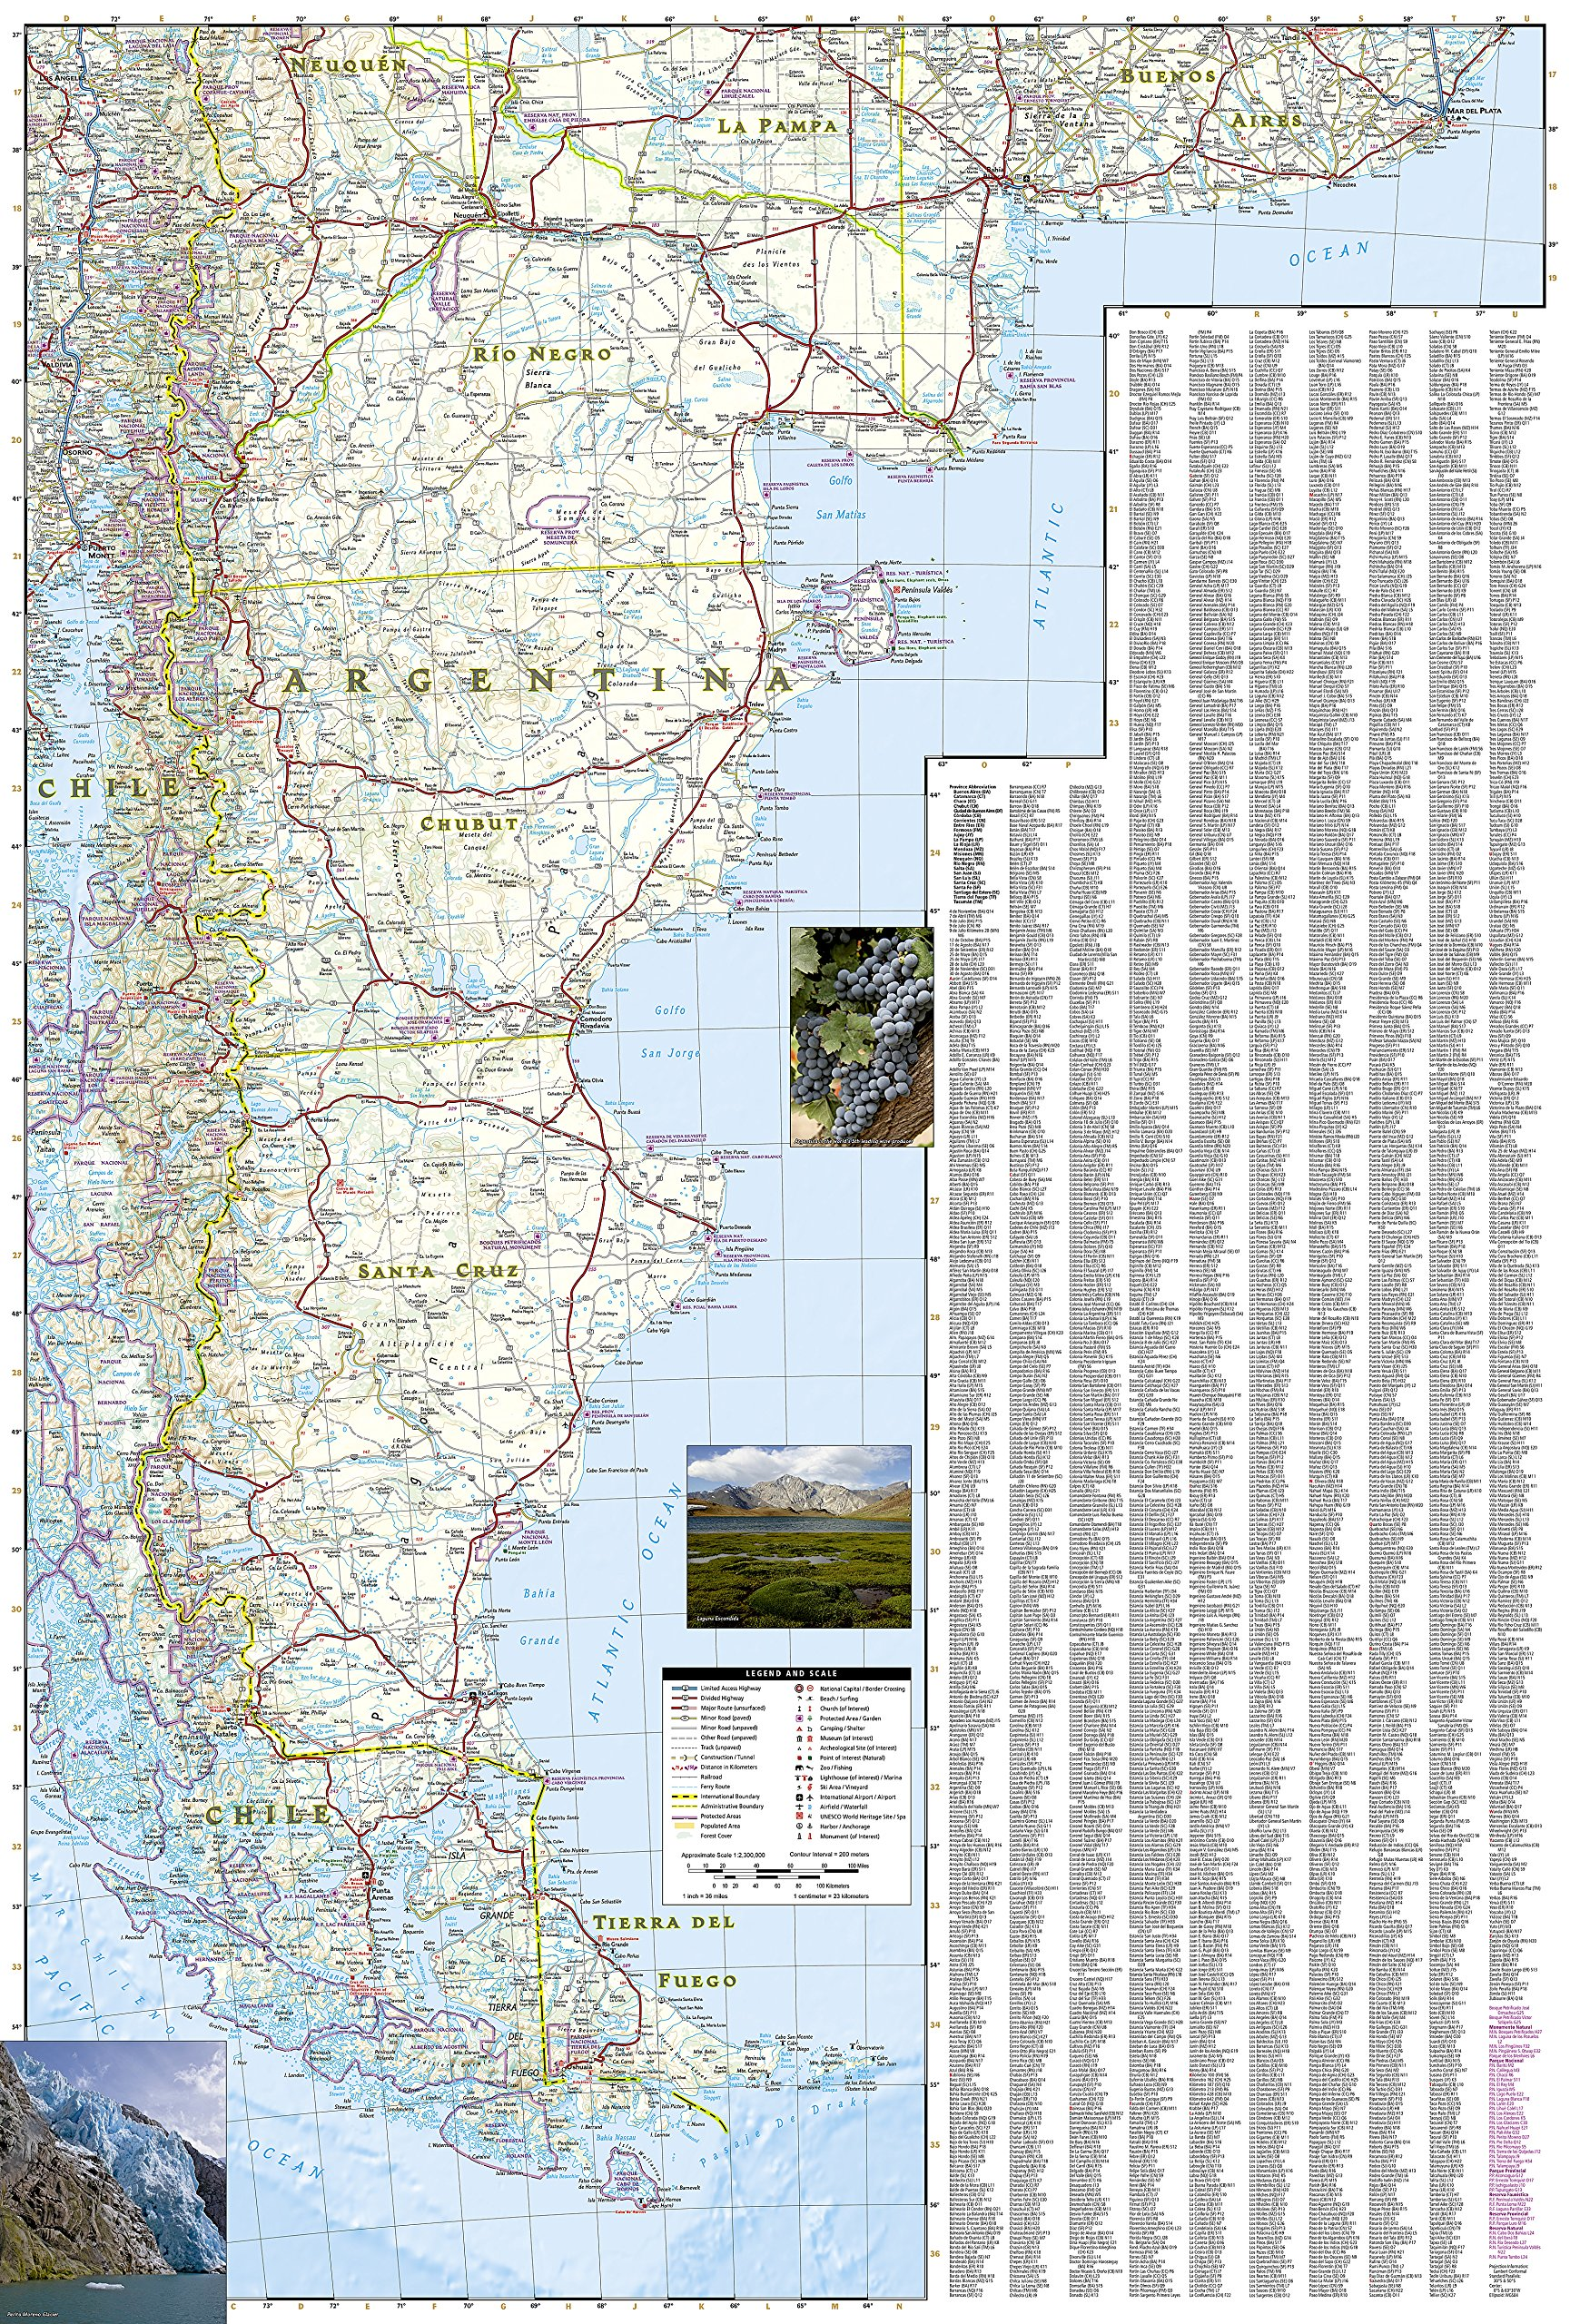 Argentina national geographic adventure map national geographic argentina national geographic adventure map national geographic maps adventure 0749717034006 amazon books gumiabroncs Image collections